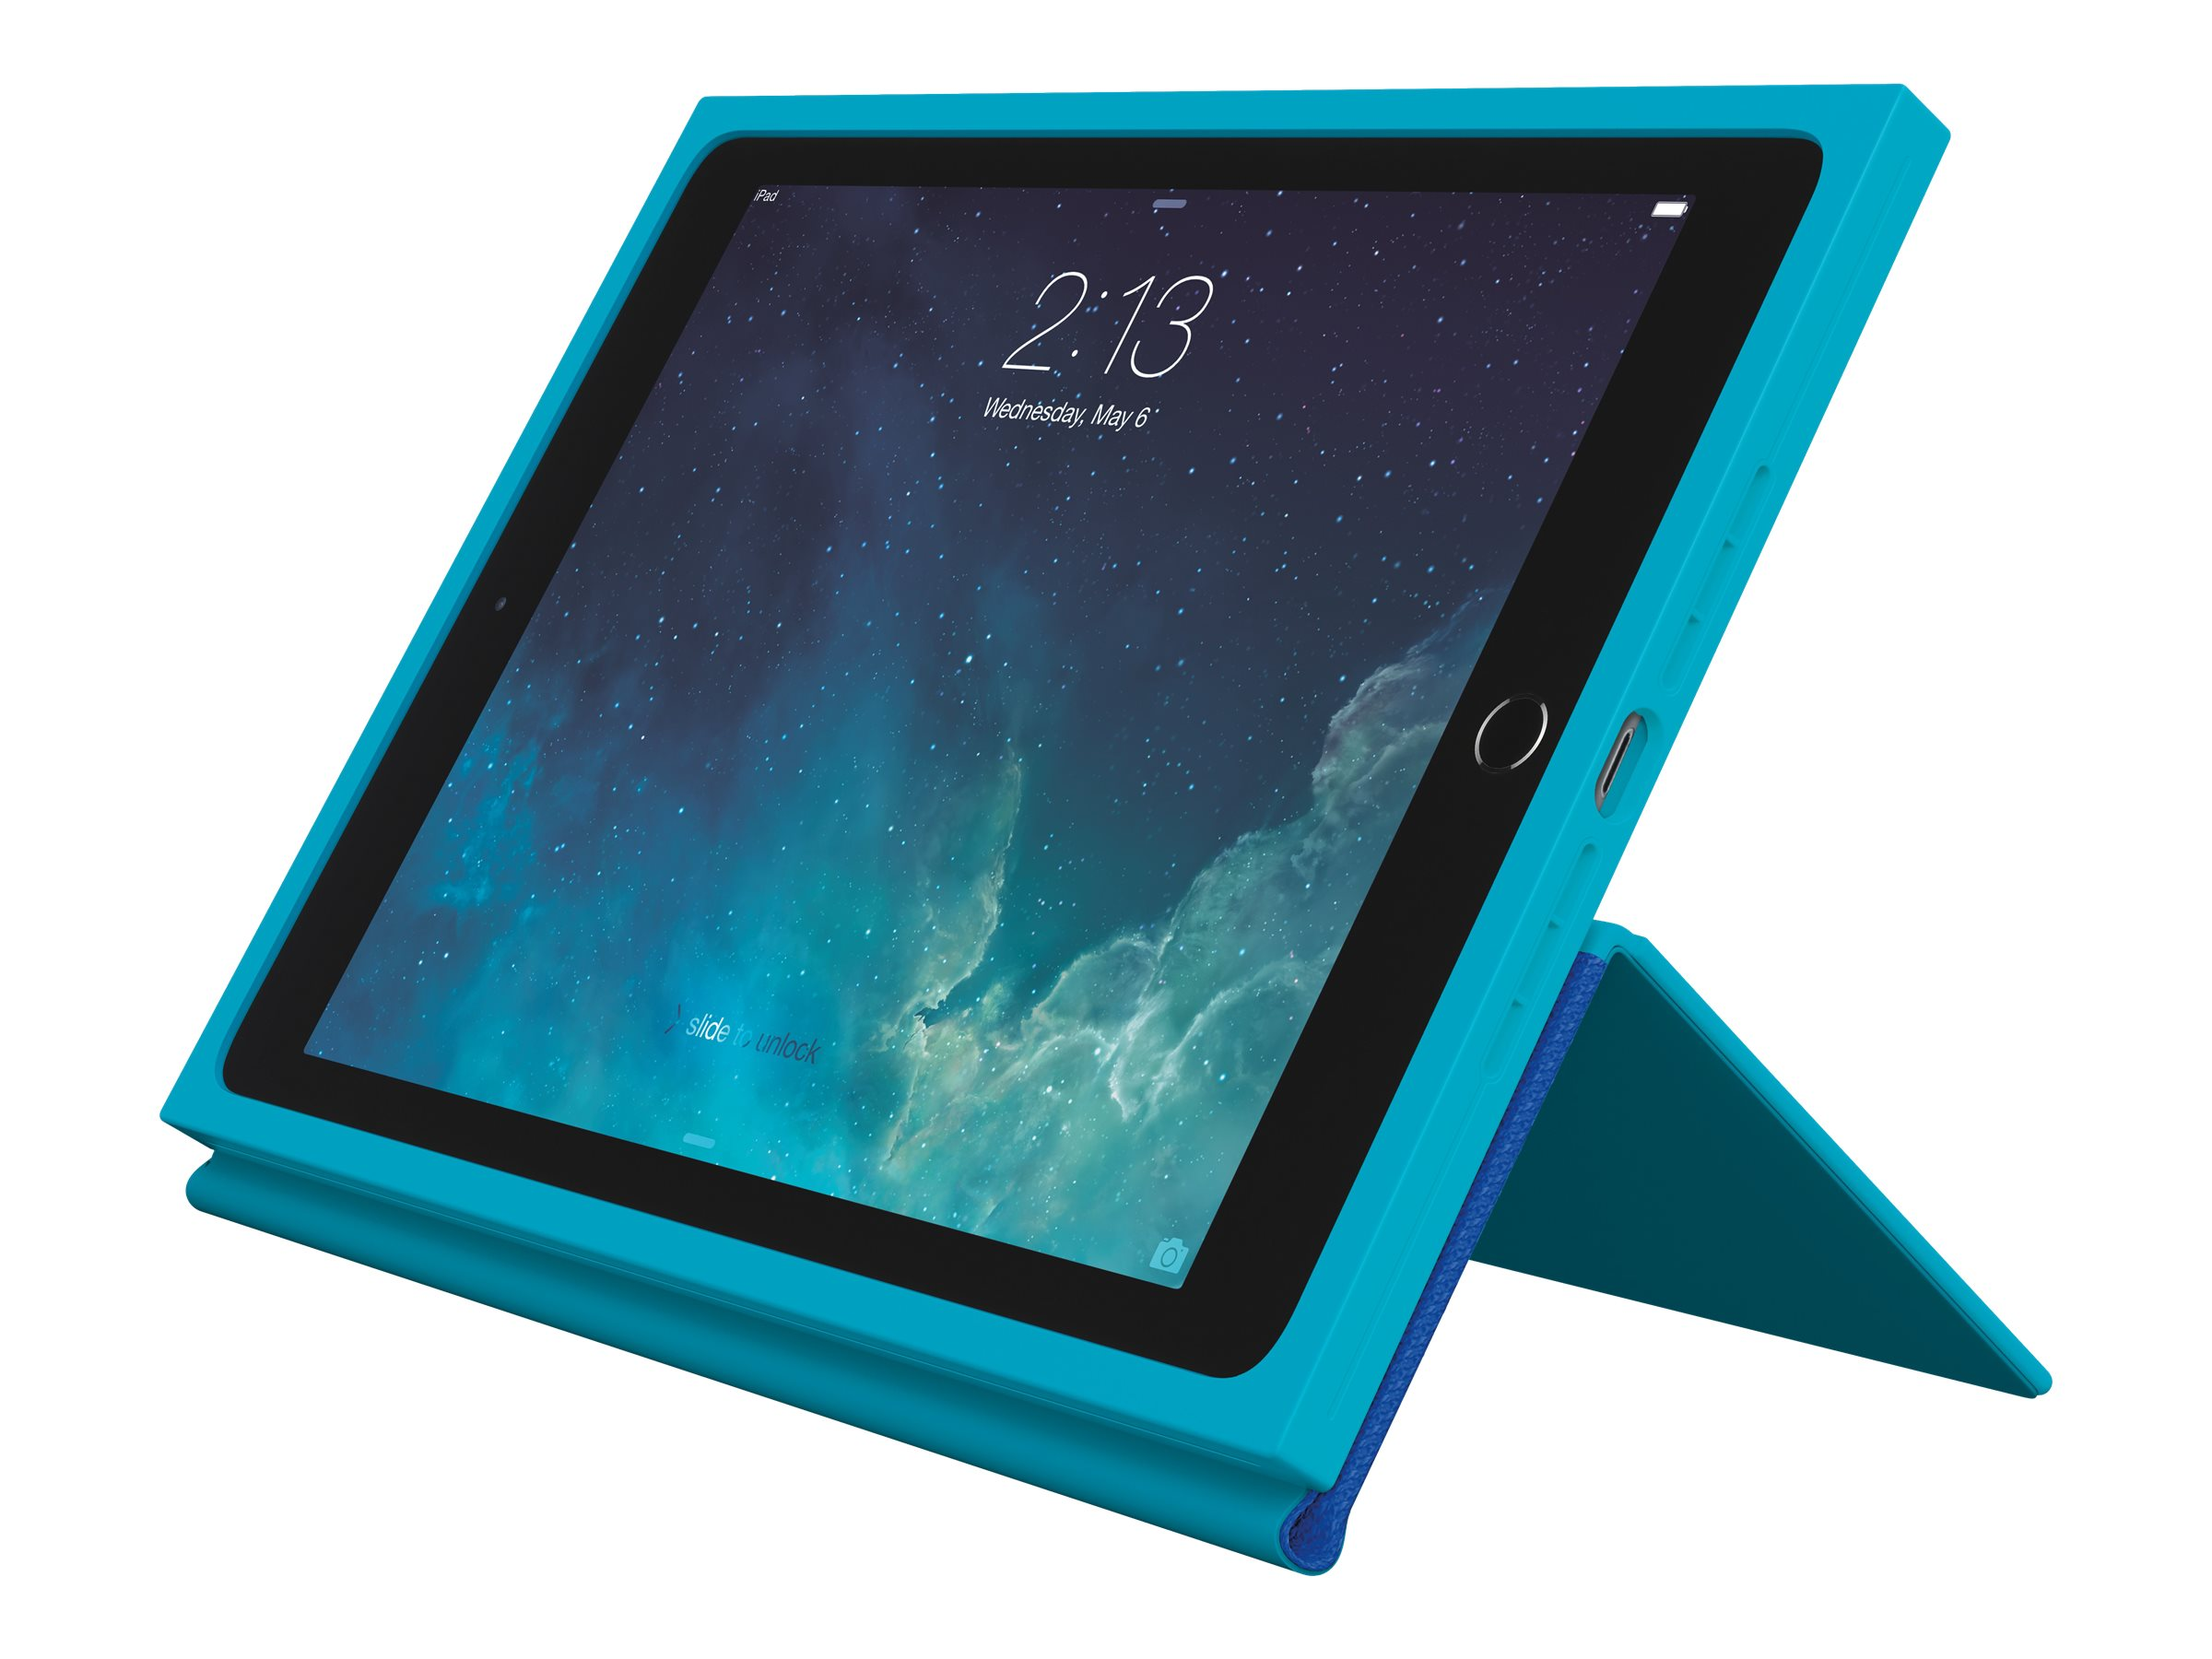 Logitech BLOK Protective Keyboard Case for iPad Air 2, Teal Blue, 920-007419